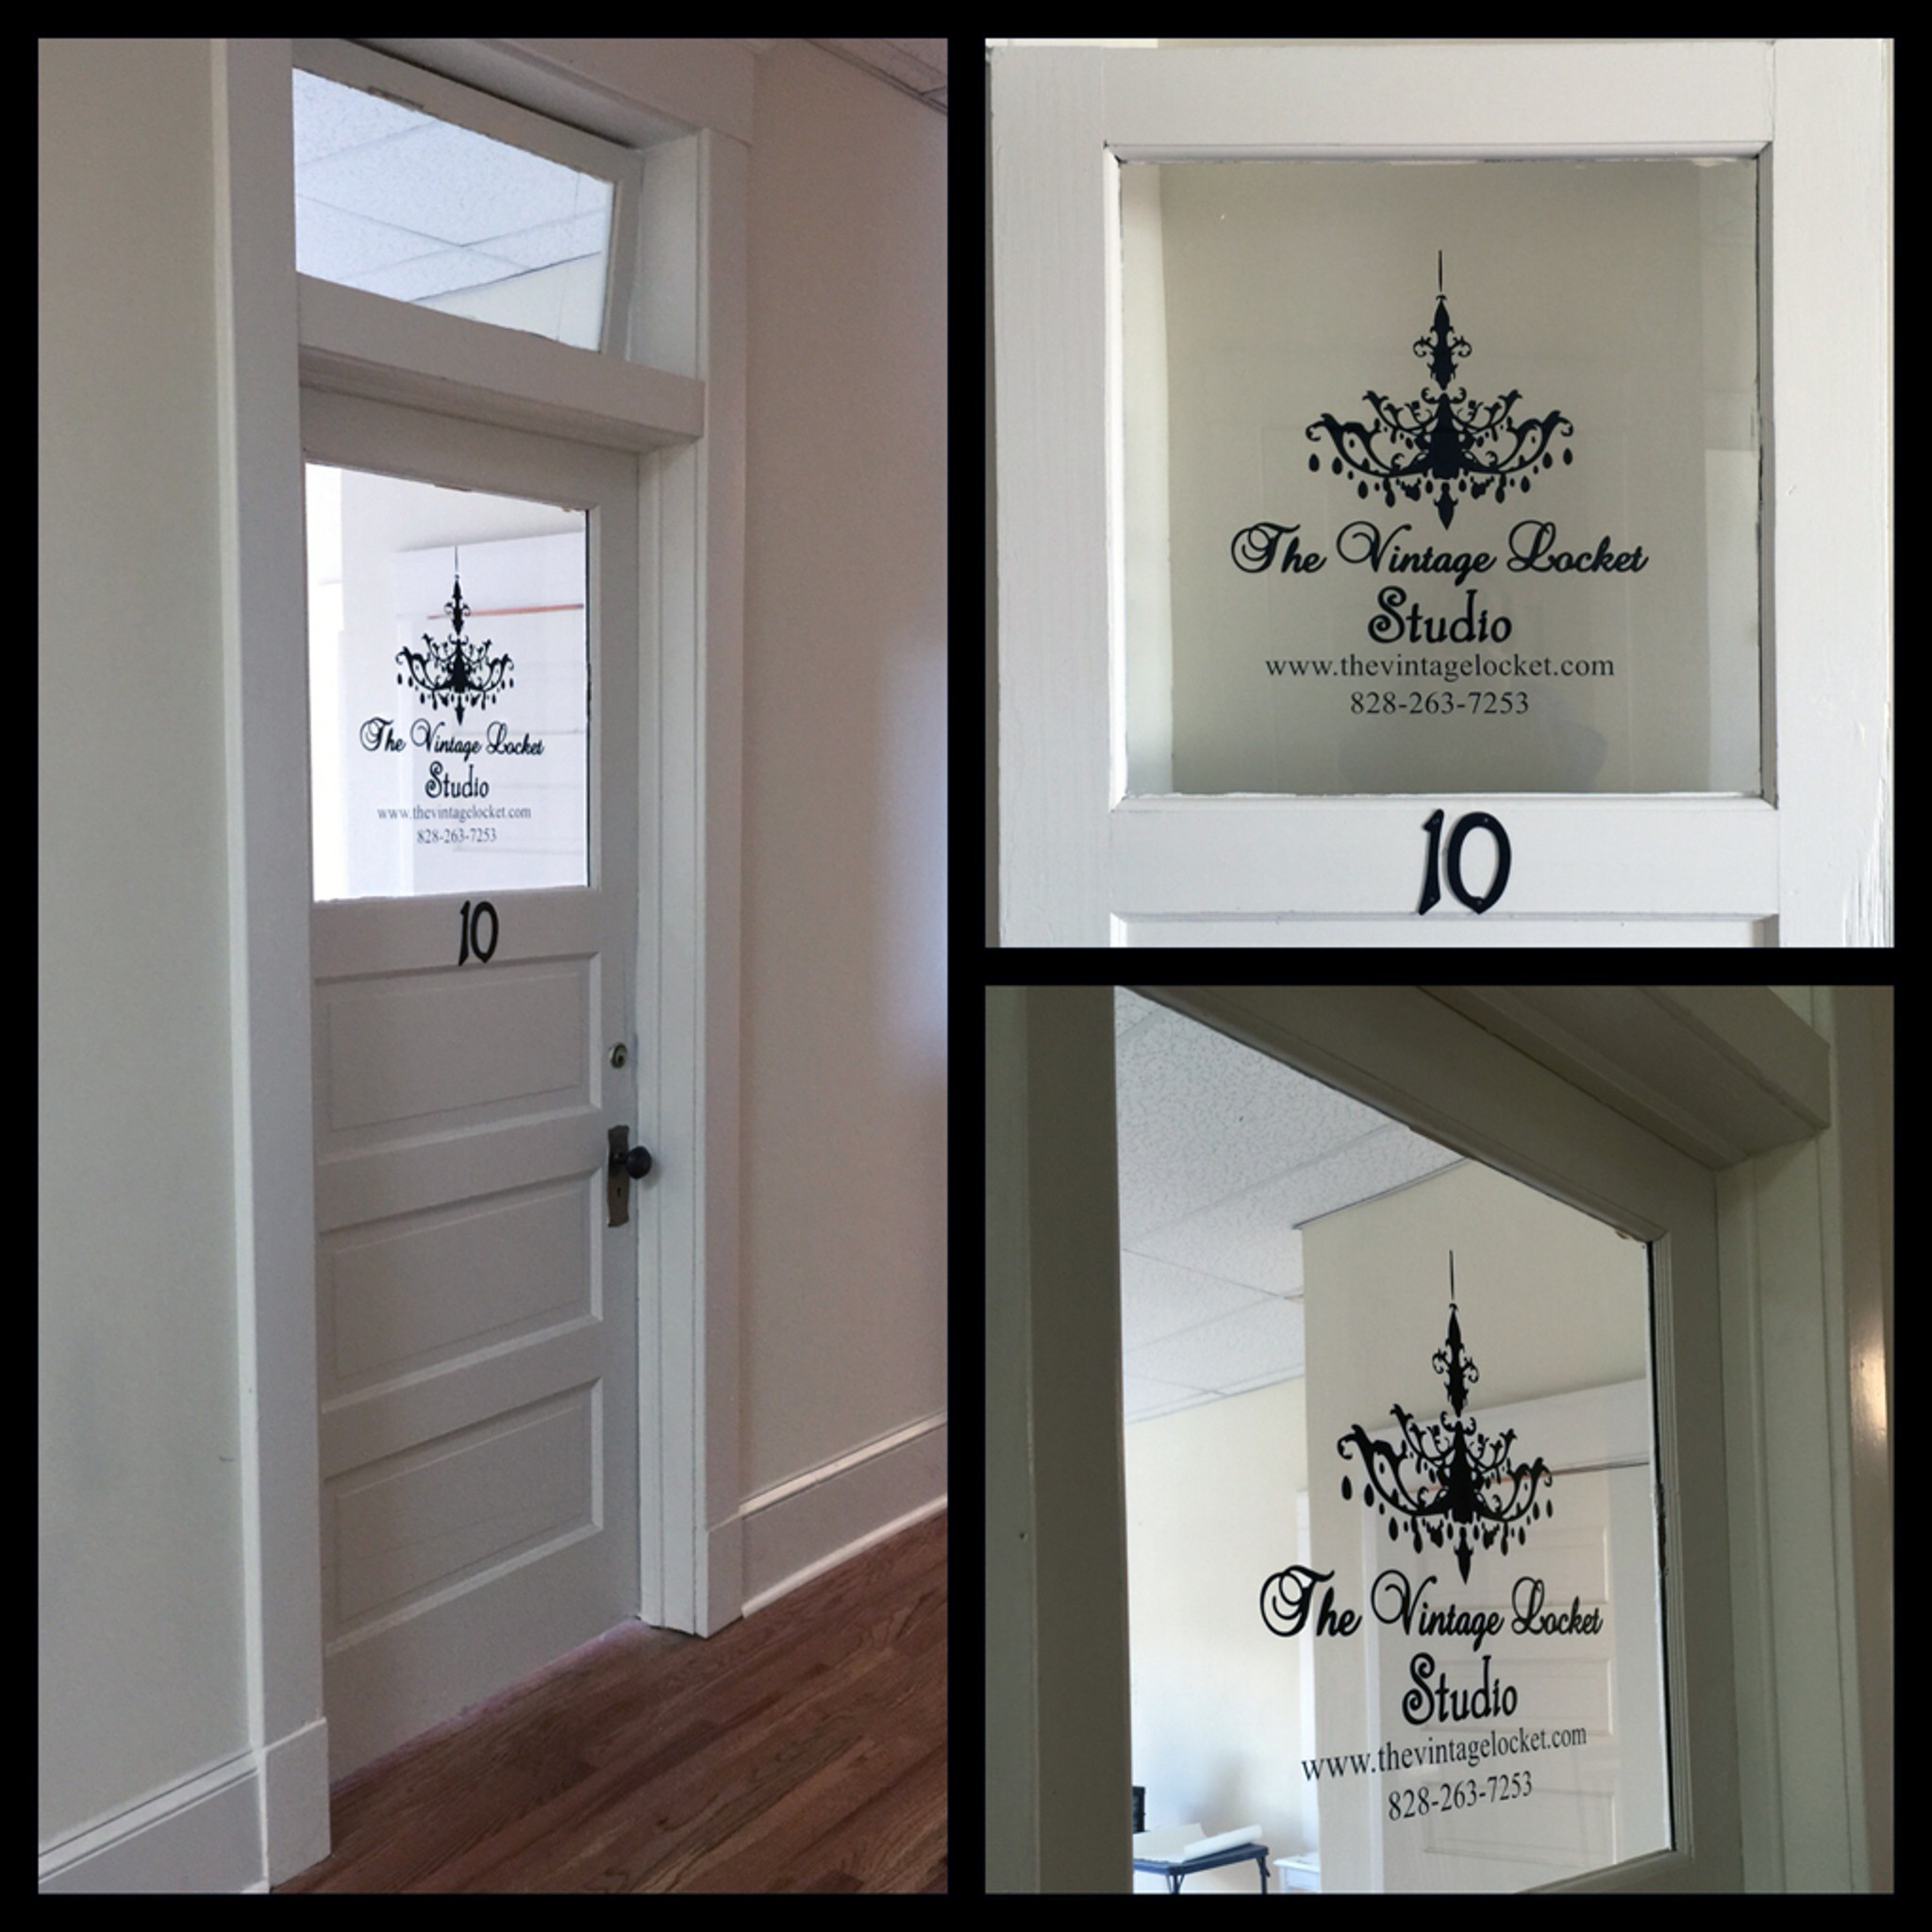 Custom Business Logo Window Decals Wall Decor Stickers - Window decals custom business